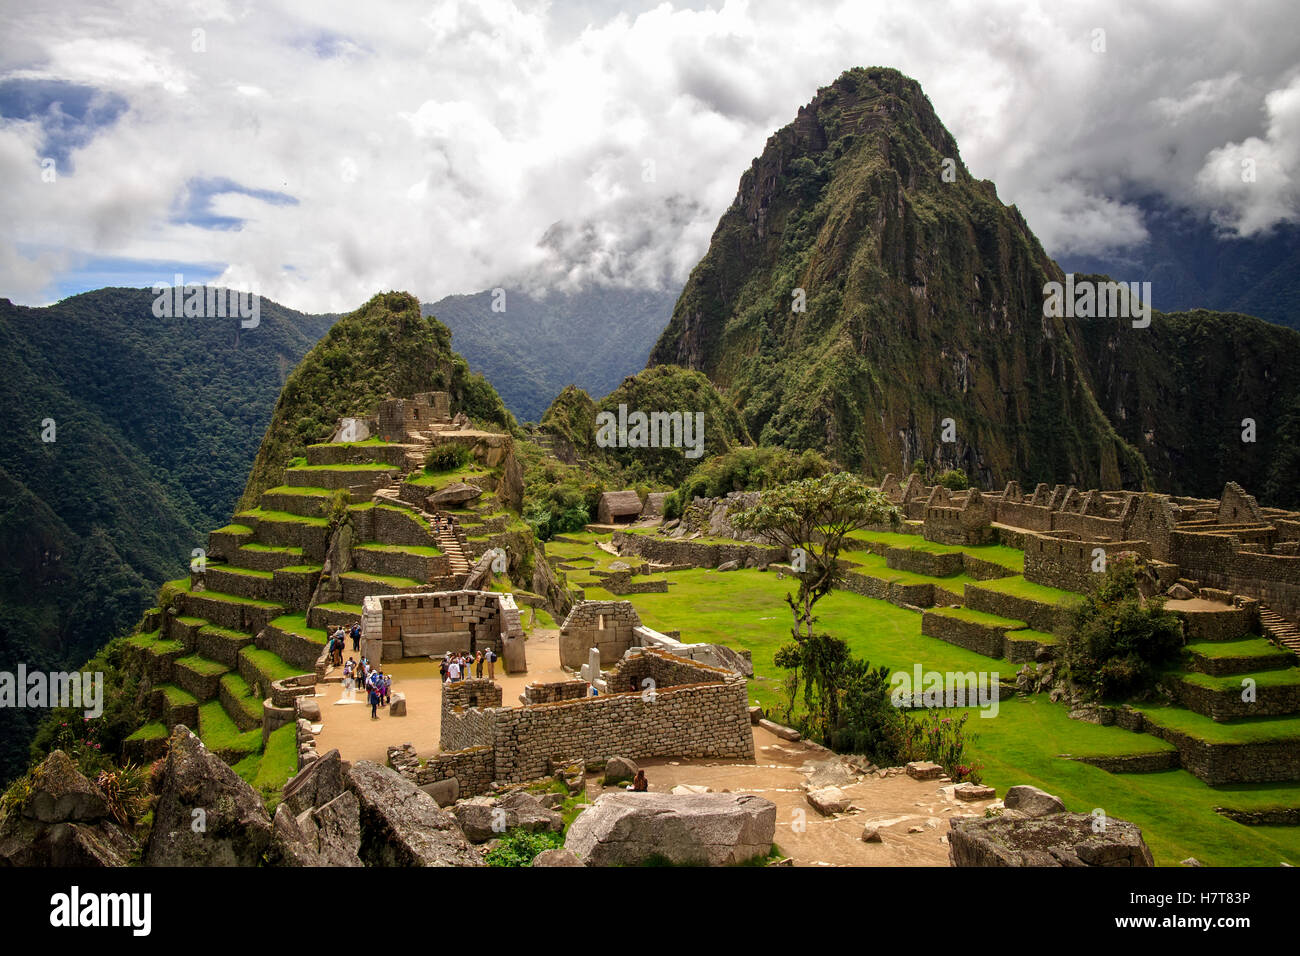 Ruins of Machu Picchu, Peru - Stock Image